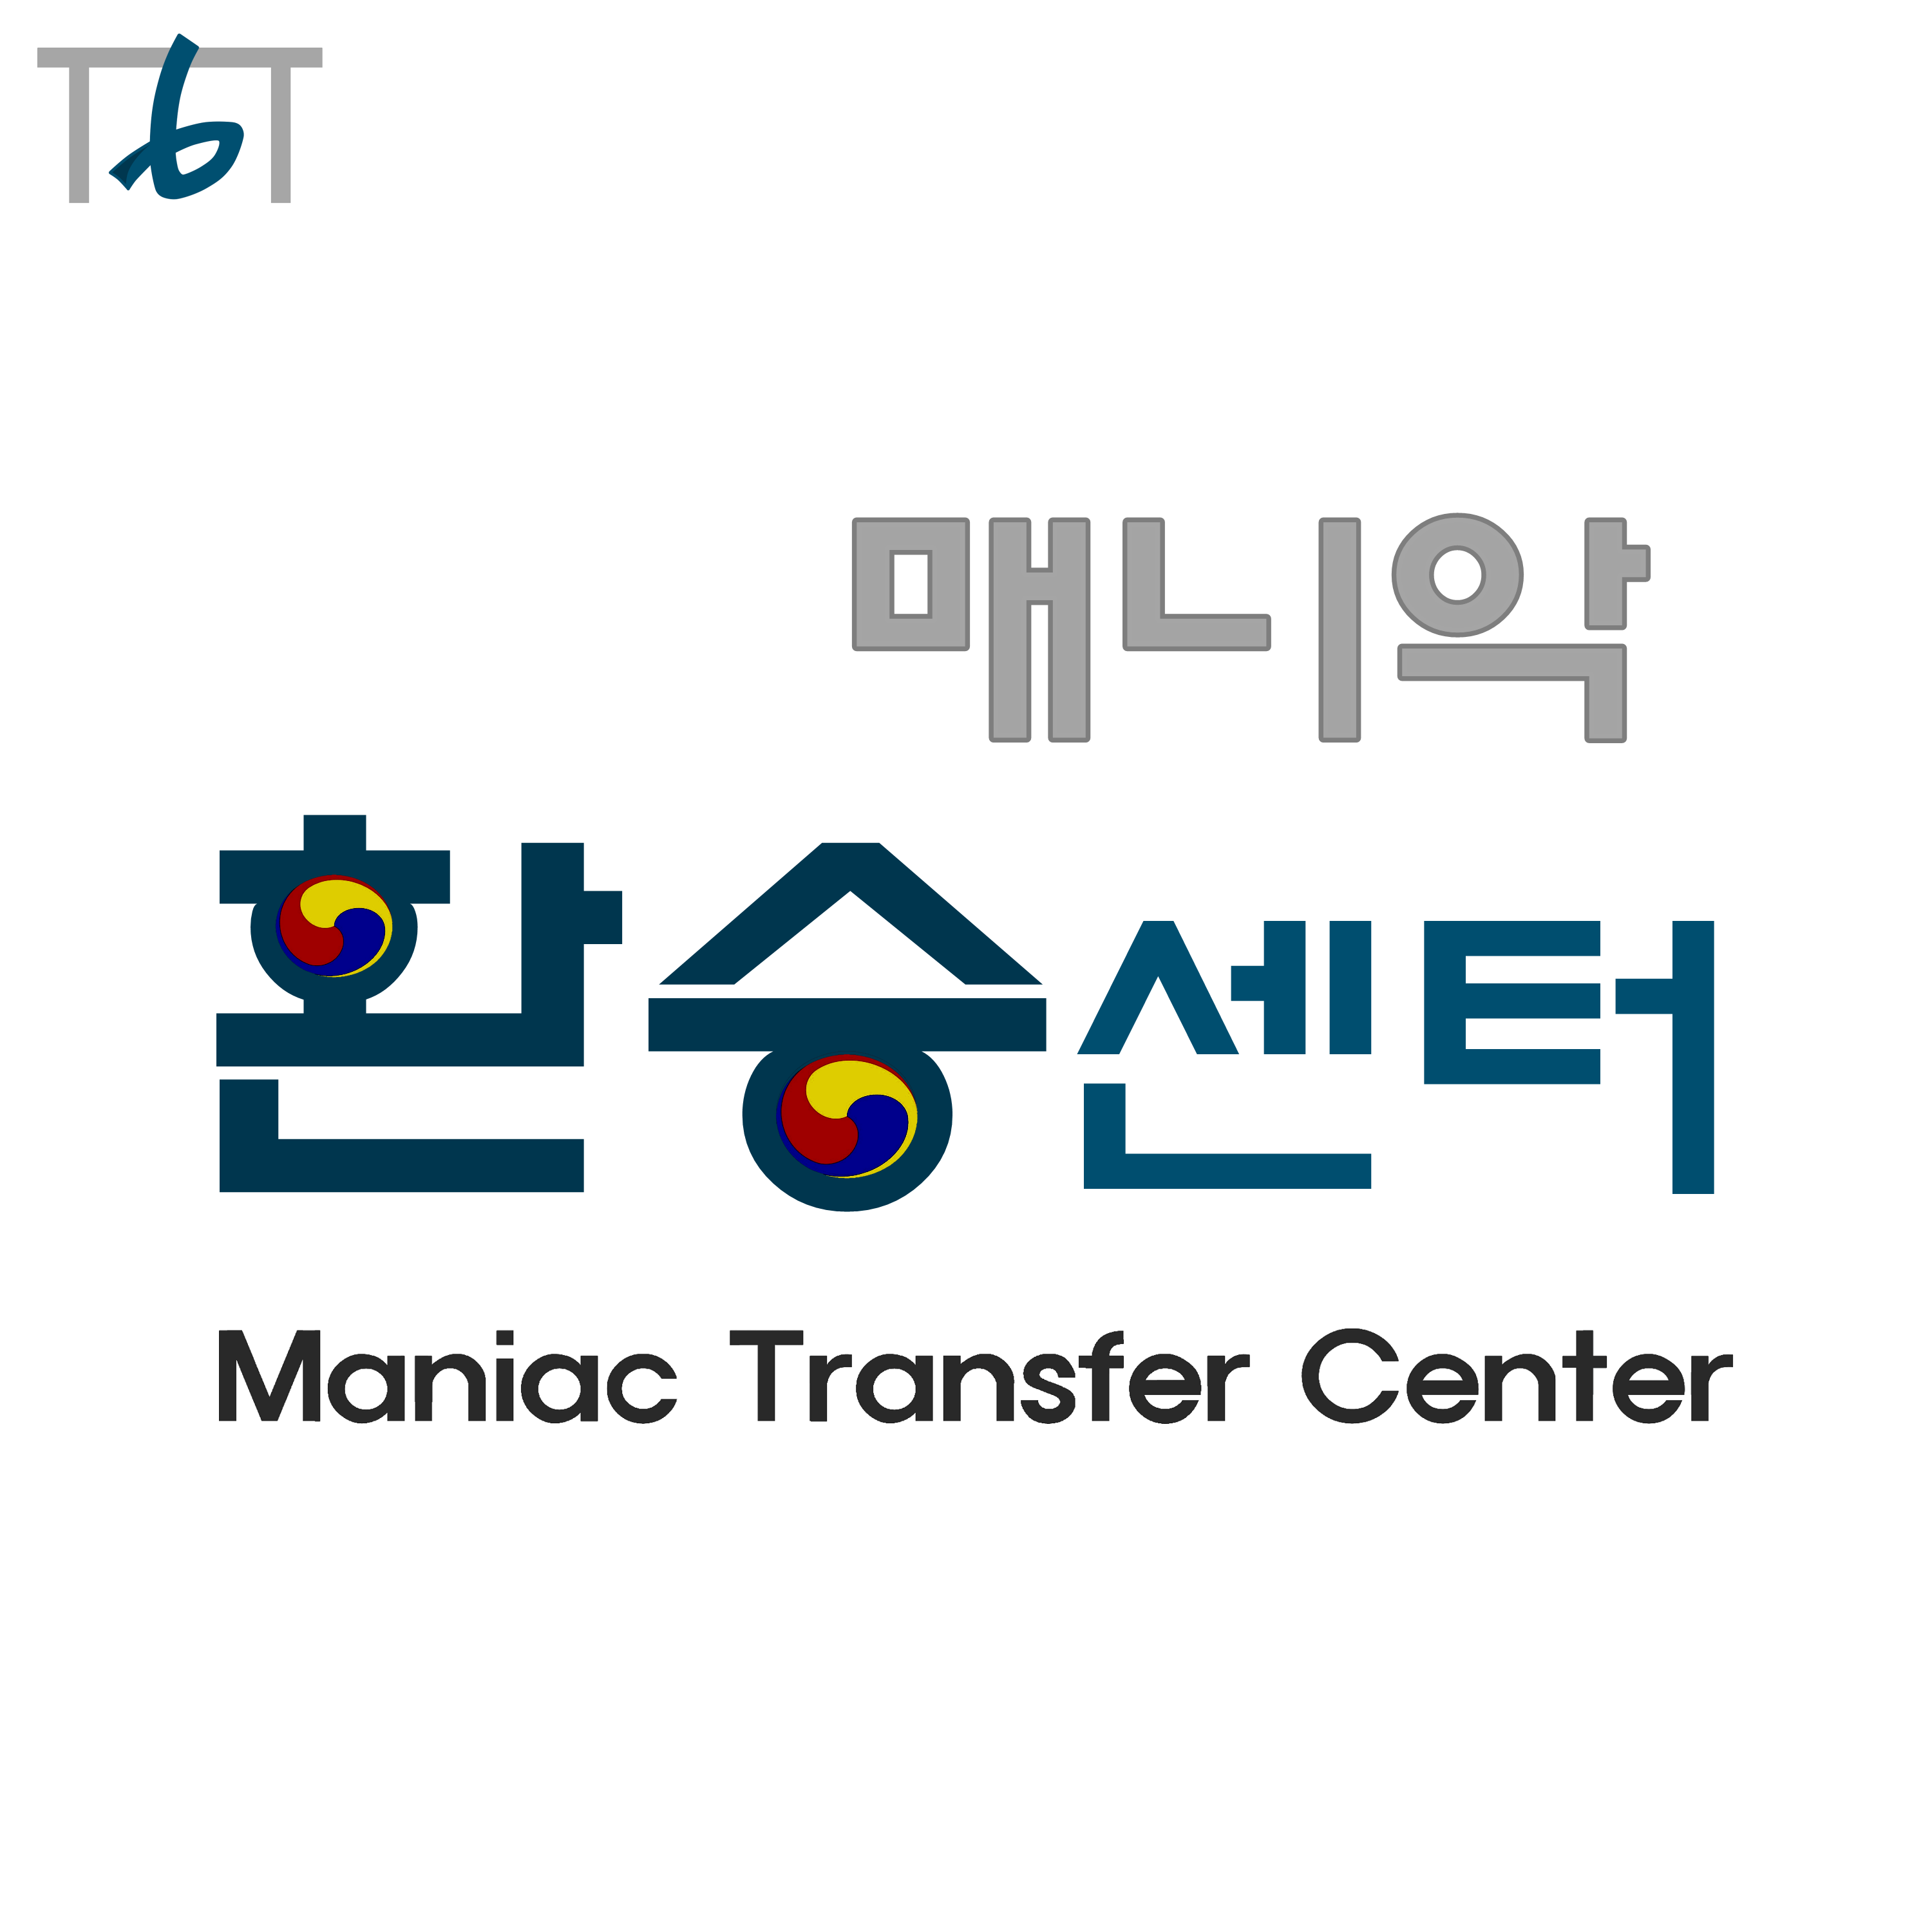 Maniac Transfer Center in TbT